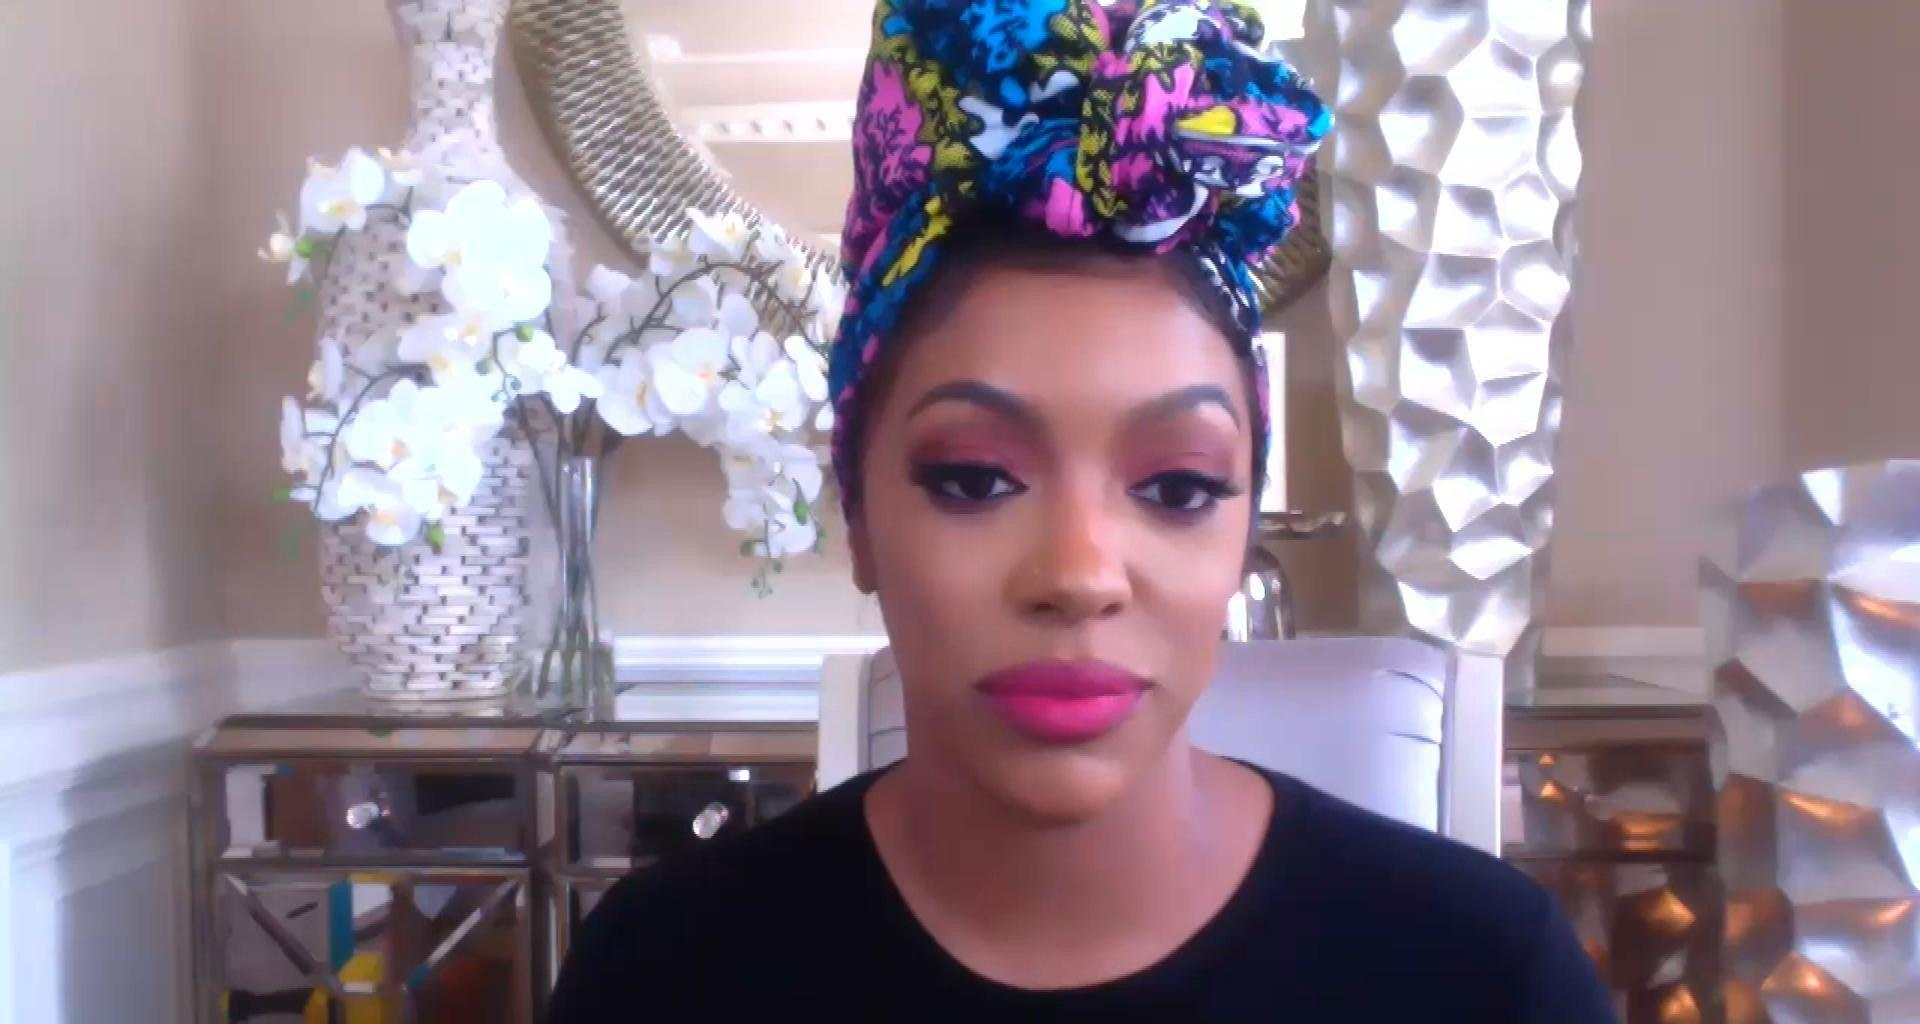 Porsha Williams Wants To Make Her Father And Grandfather Proud - Check Out Her Message